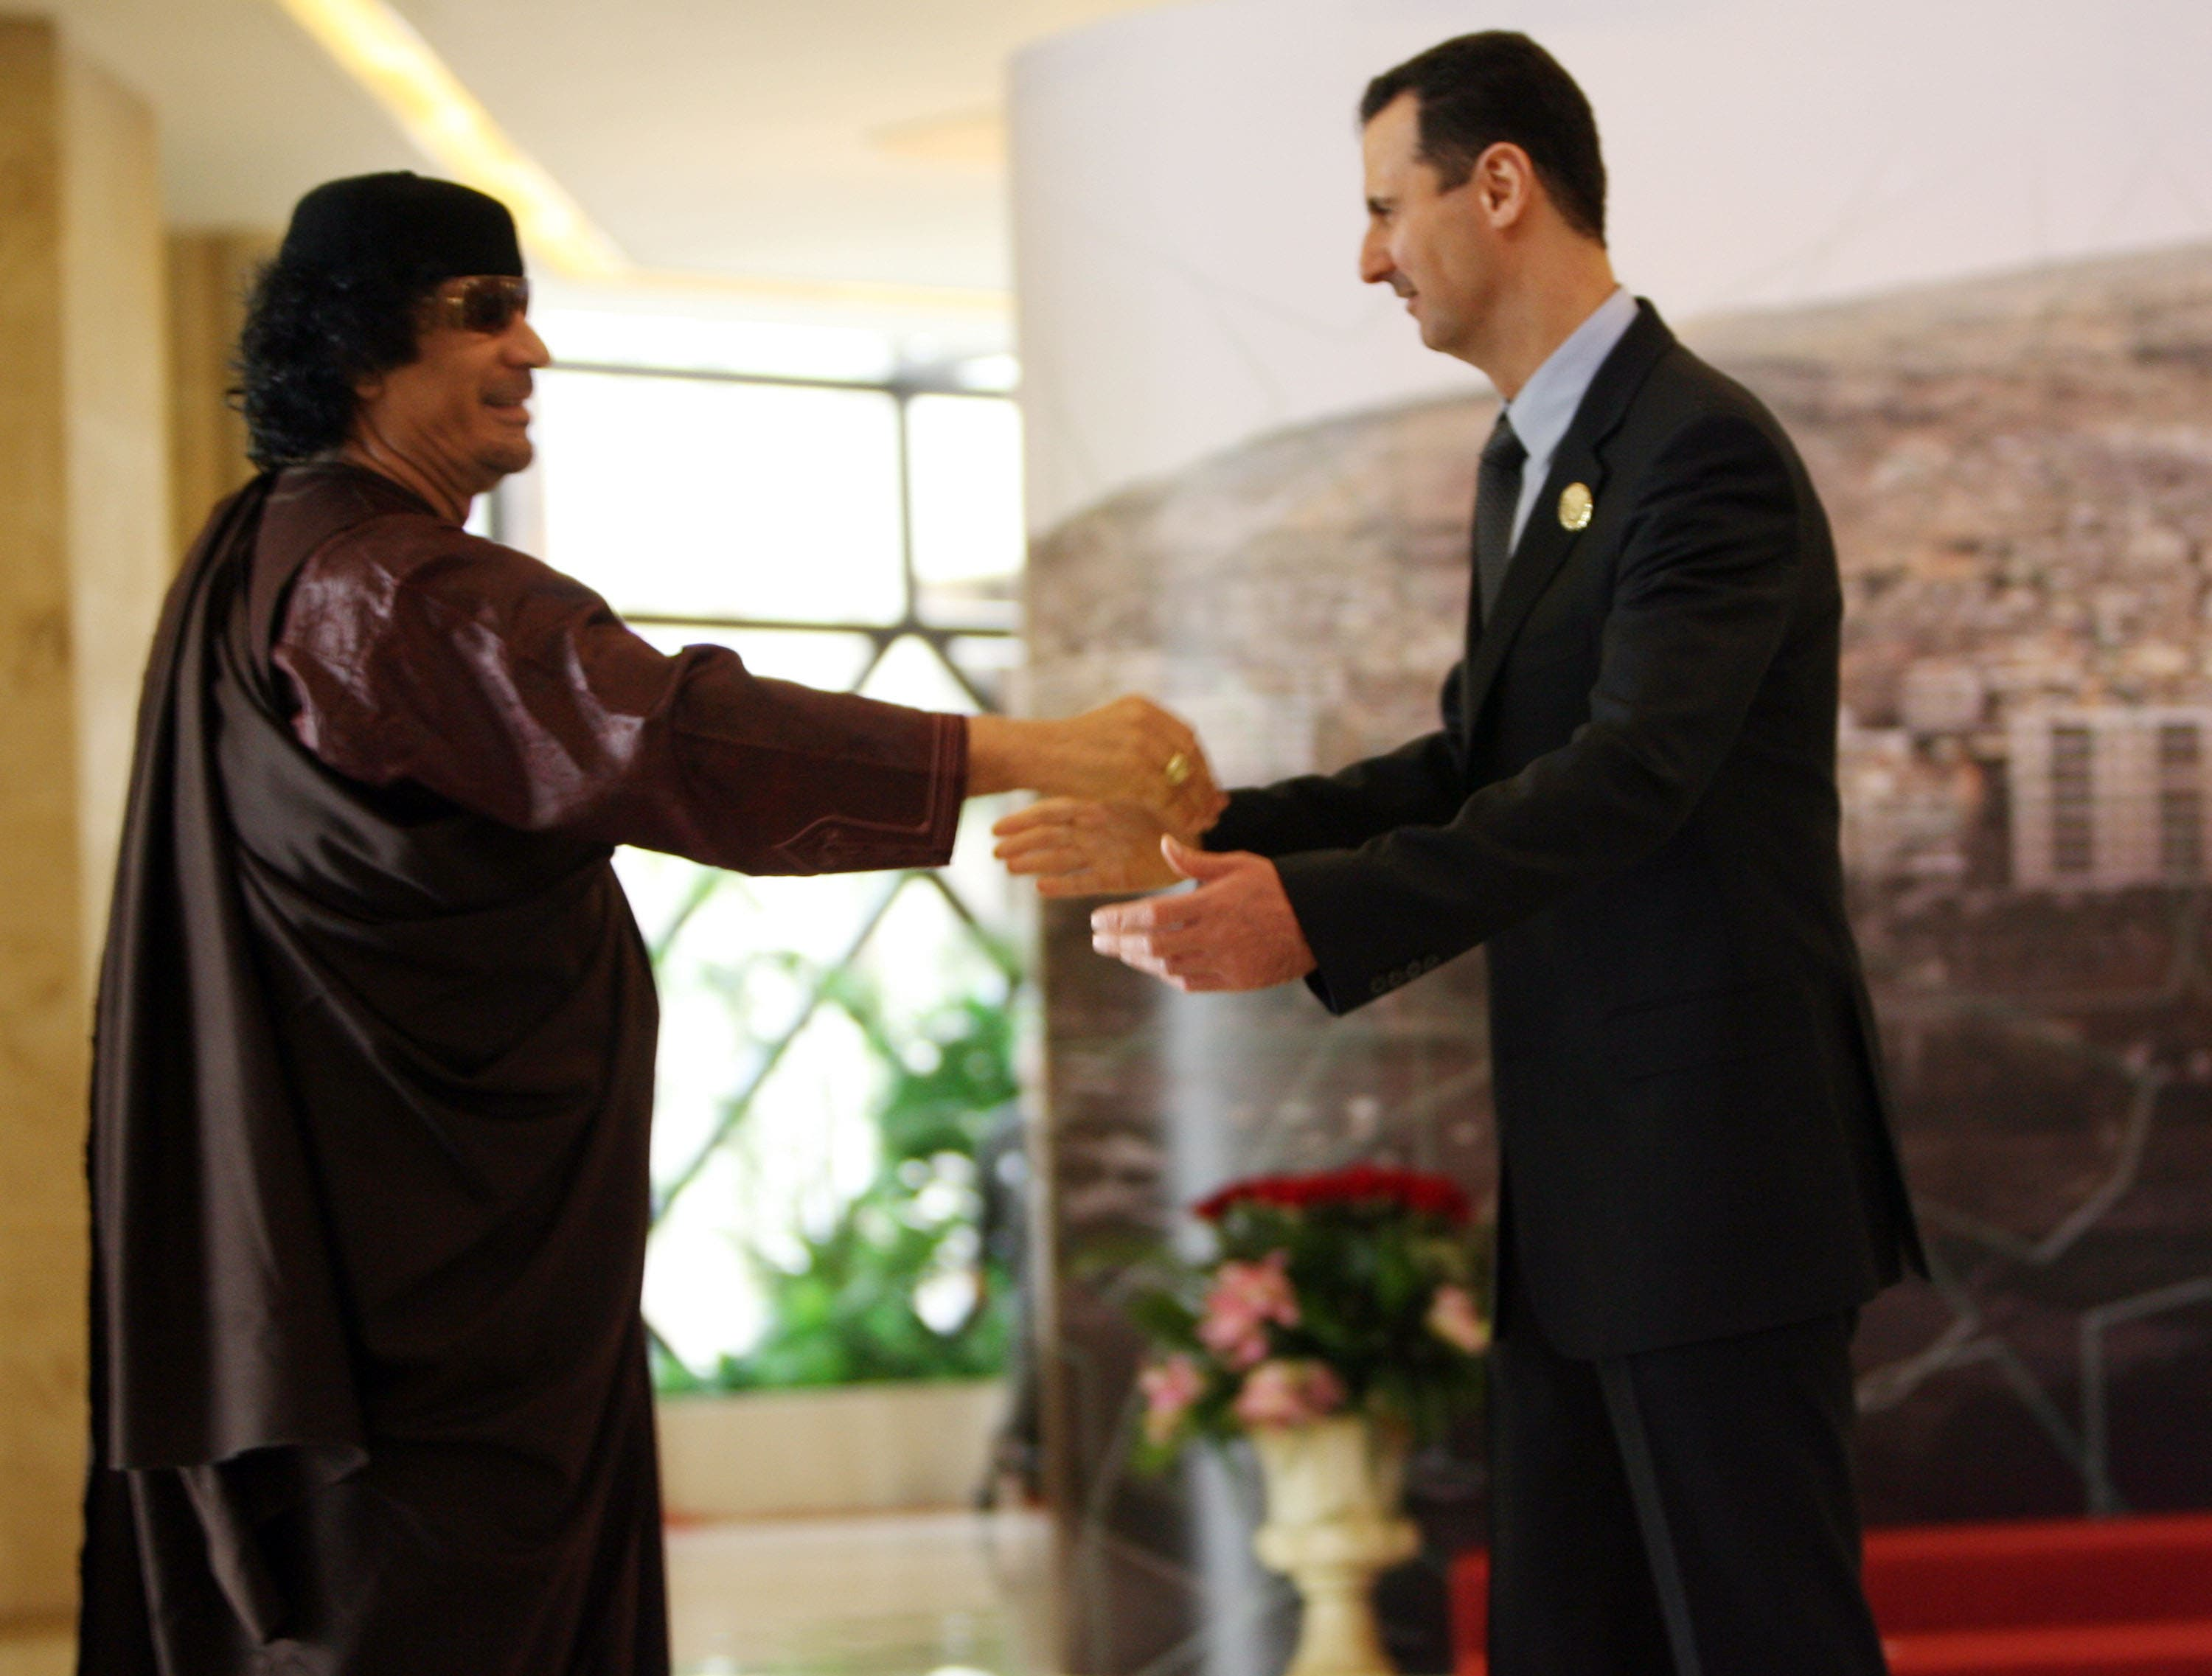 Contagious: All Arab leaders seem prone to the change-fever coming over the people, none are immune. Even al Assad.